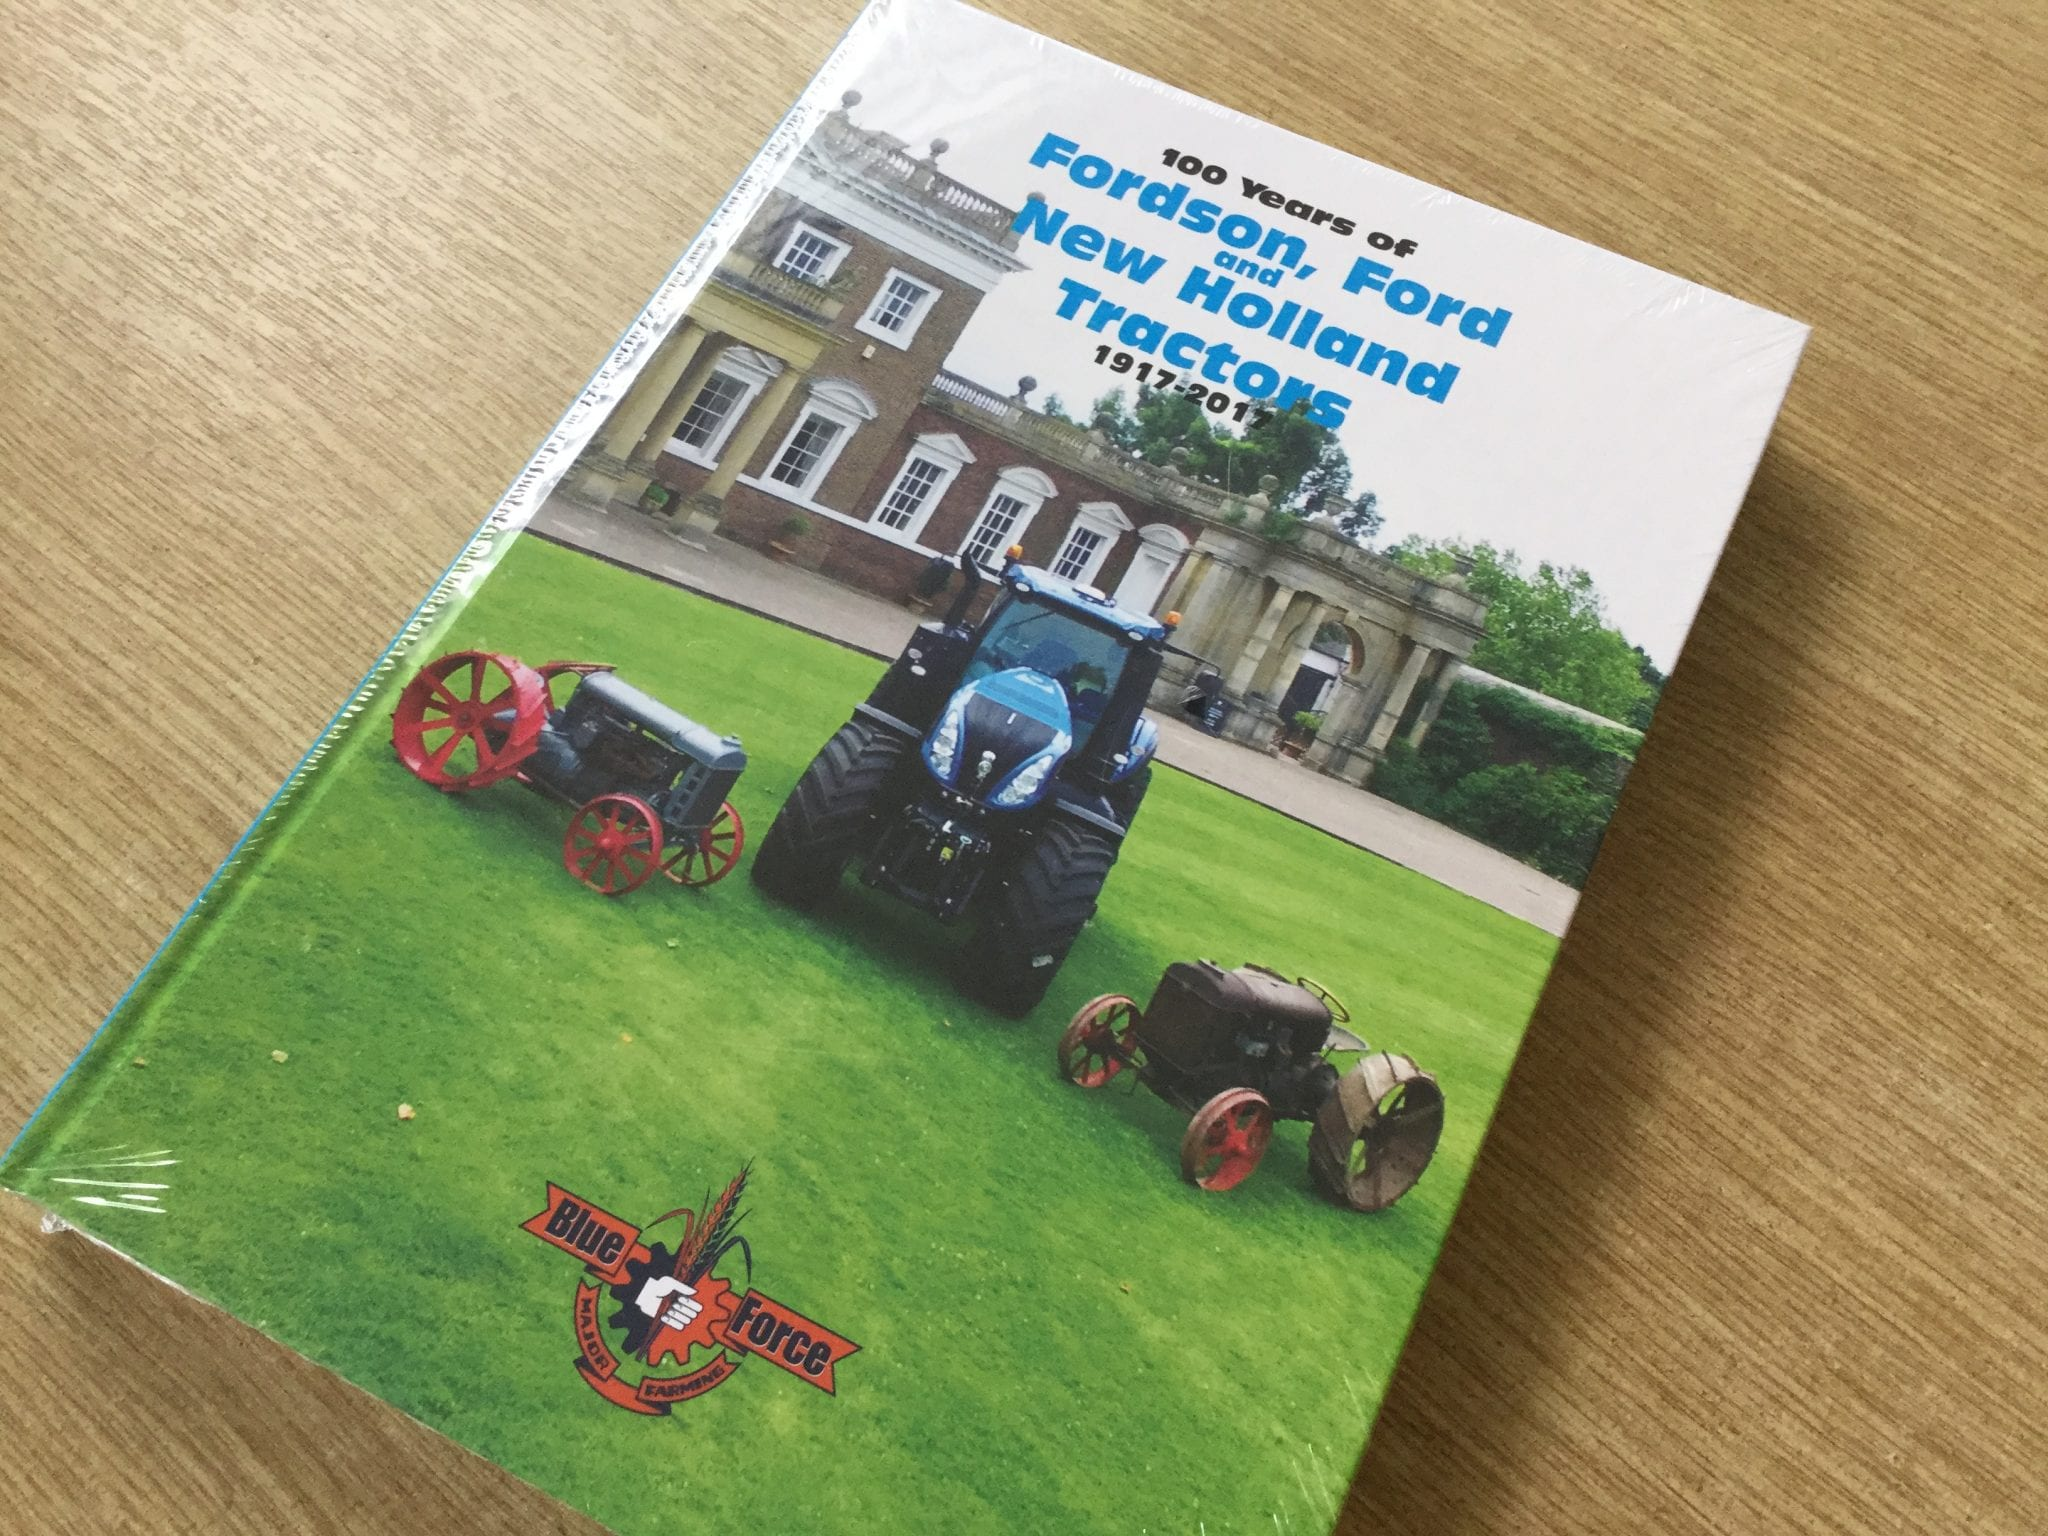 100 years of Fordson, Ford and New Holland book